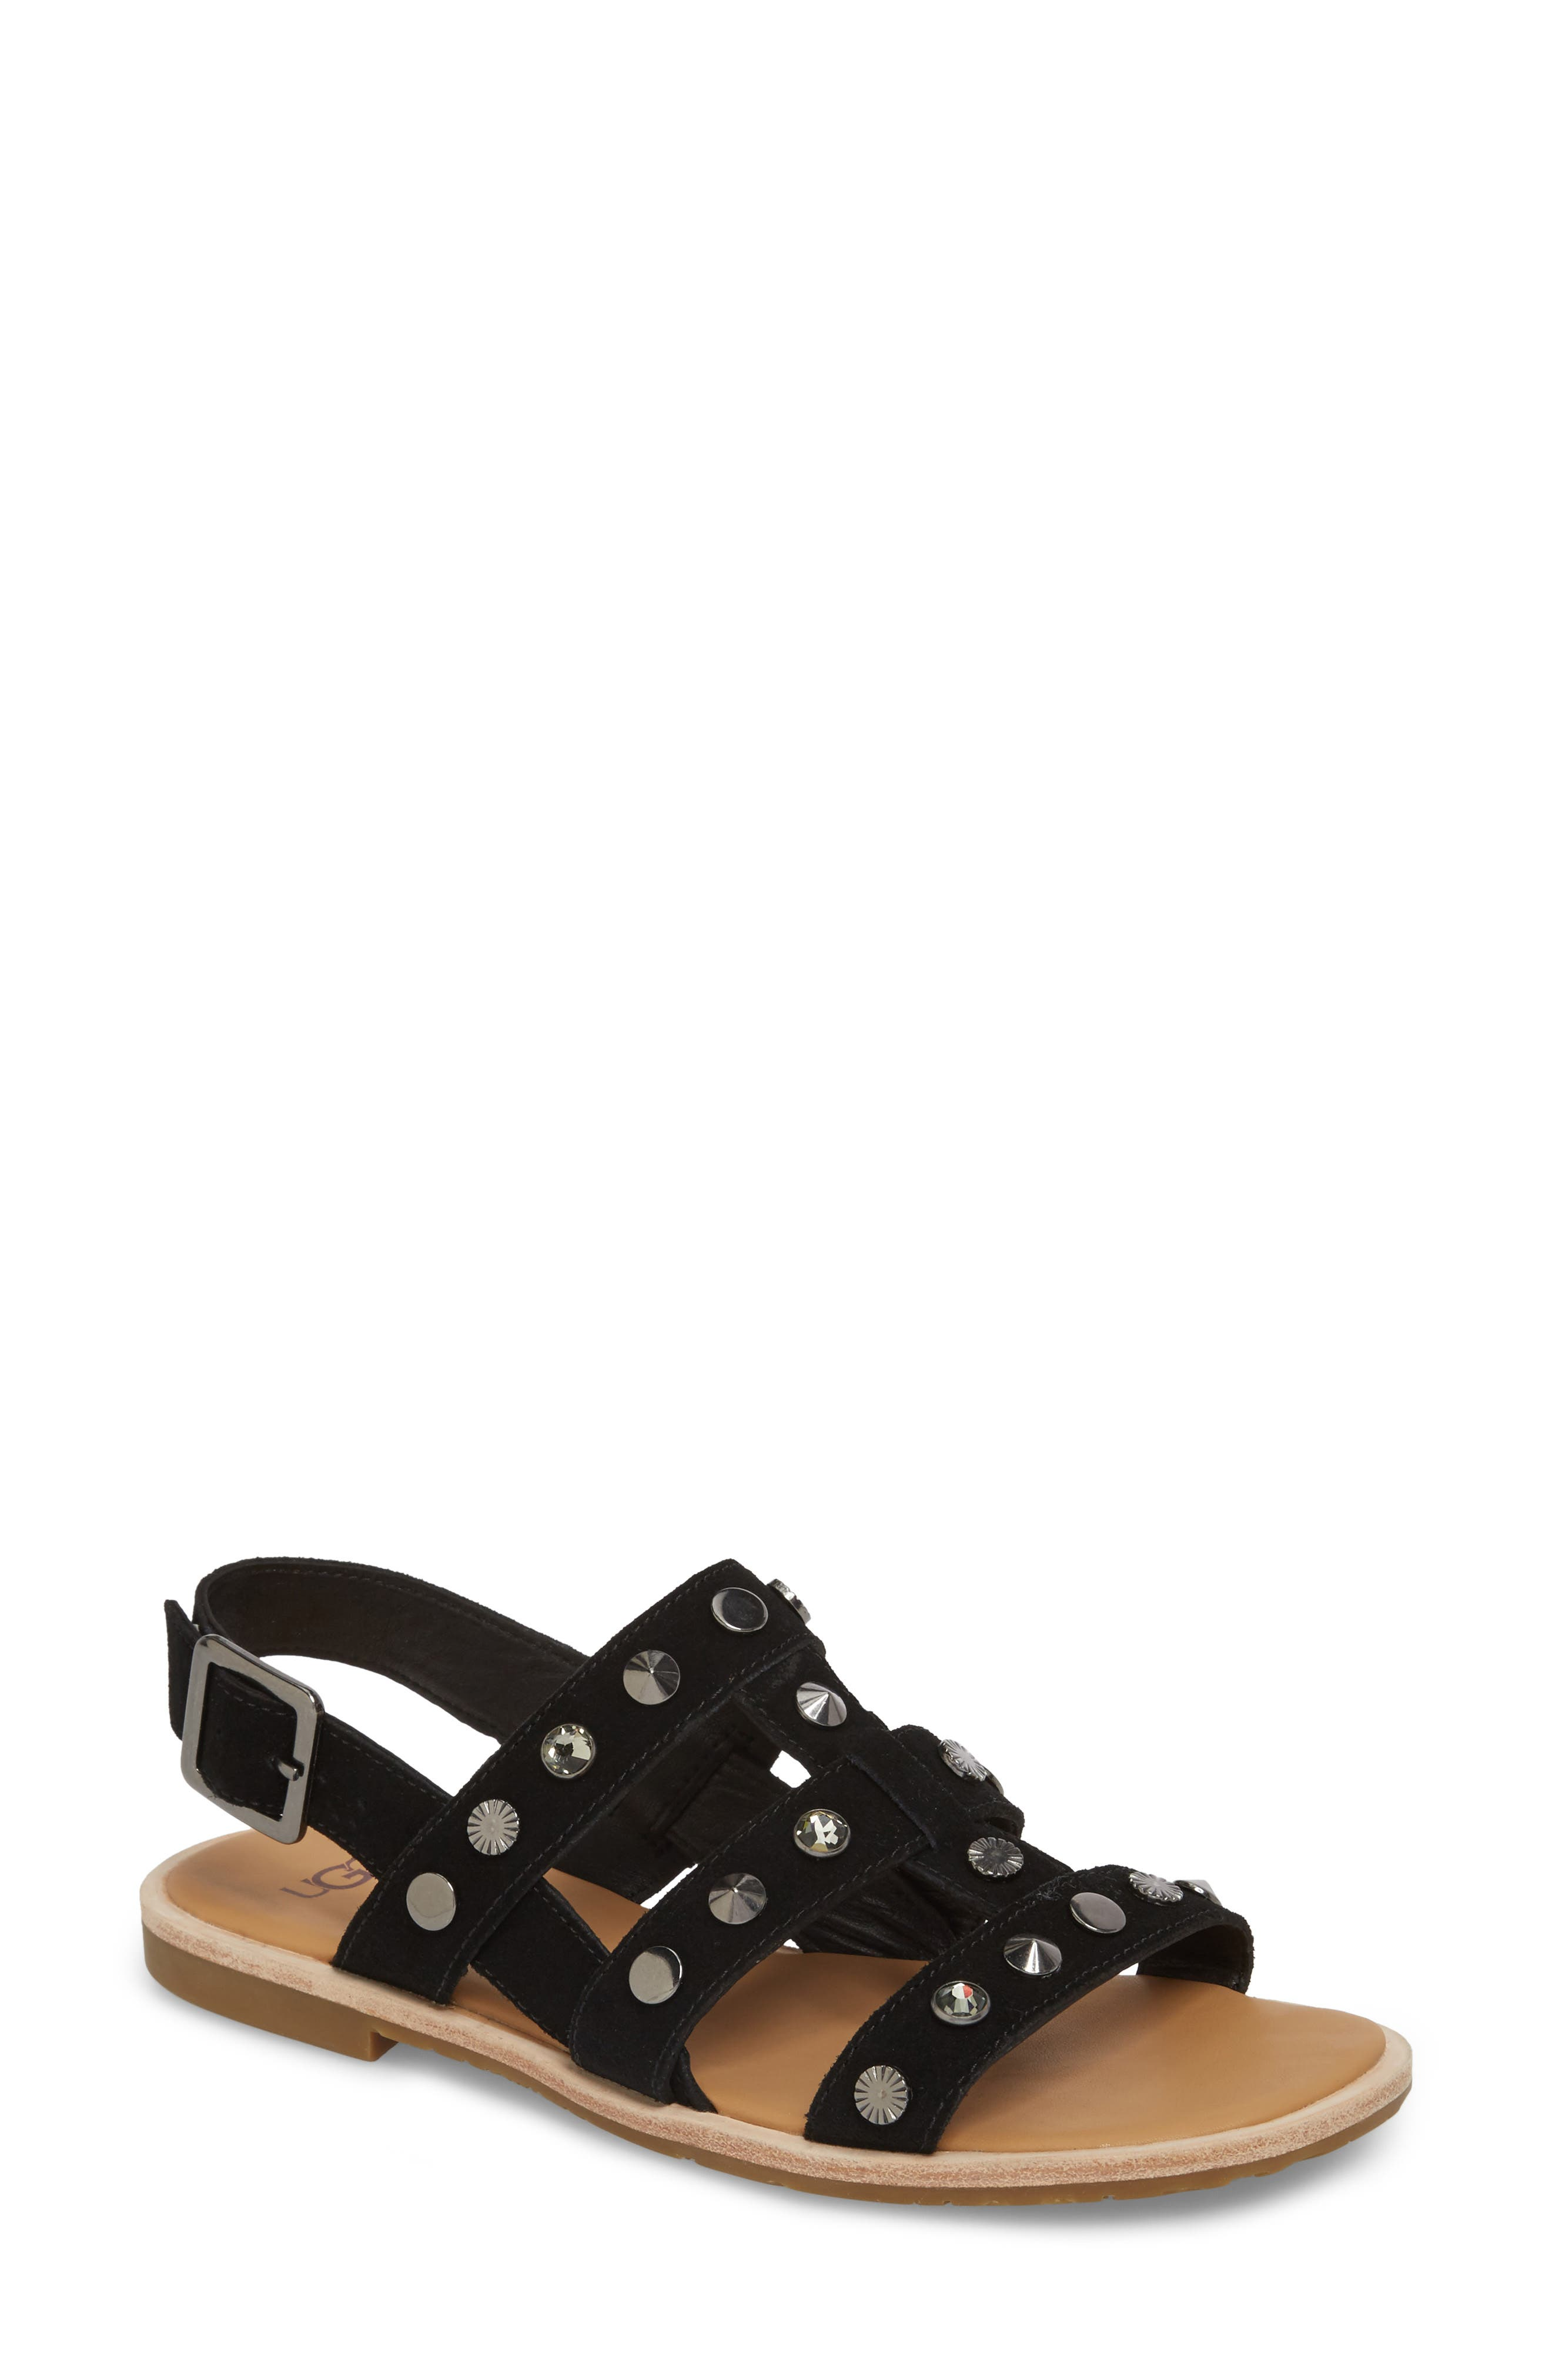 Zariah Studded Sandal,                             Main thumbnail 1, color,                             001